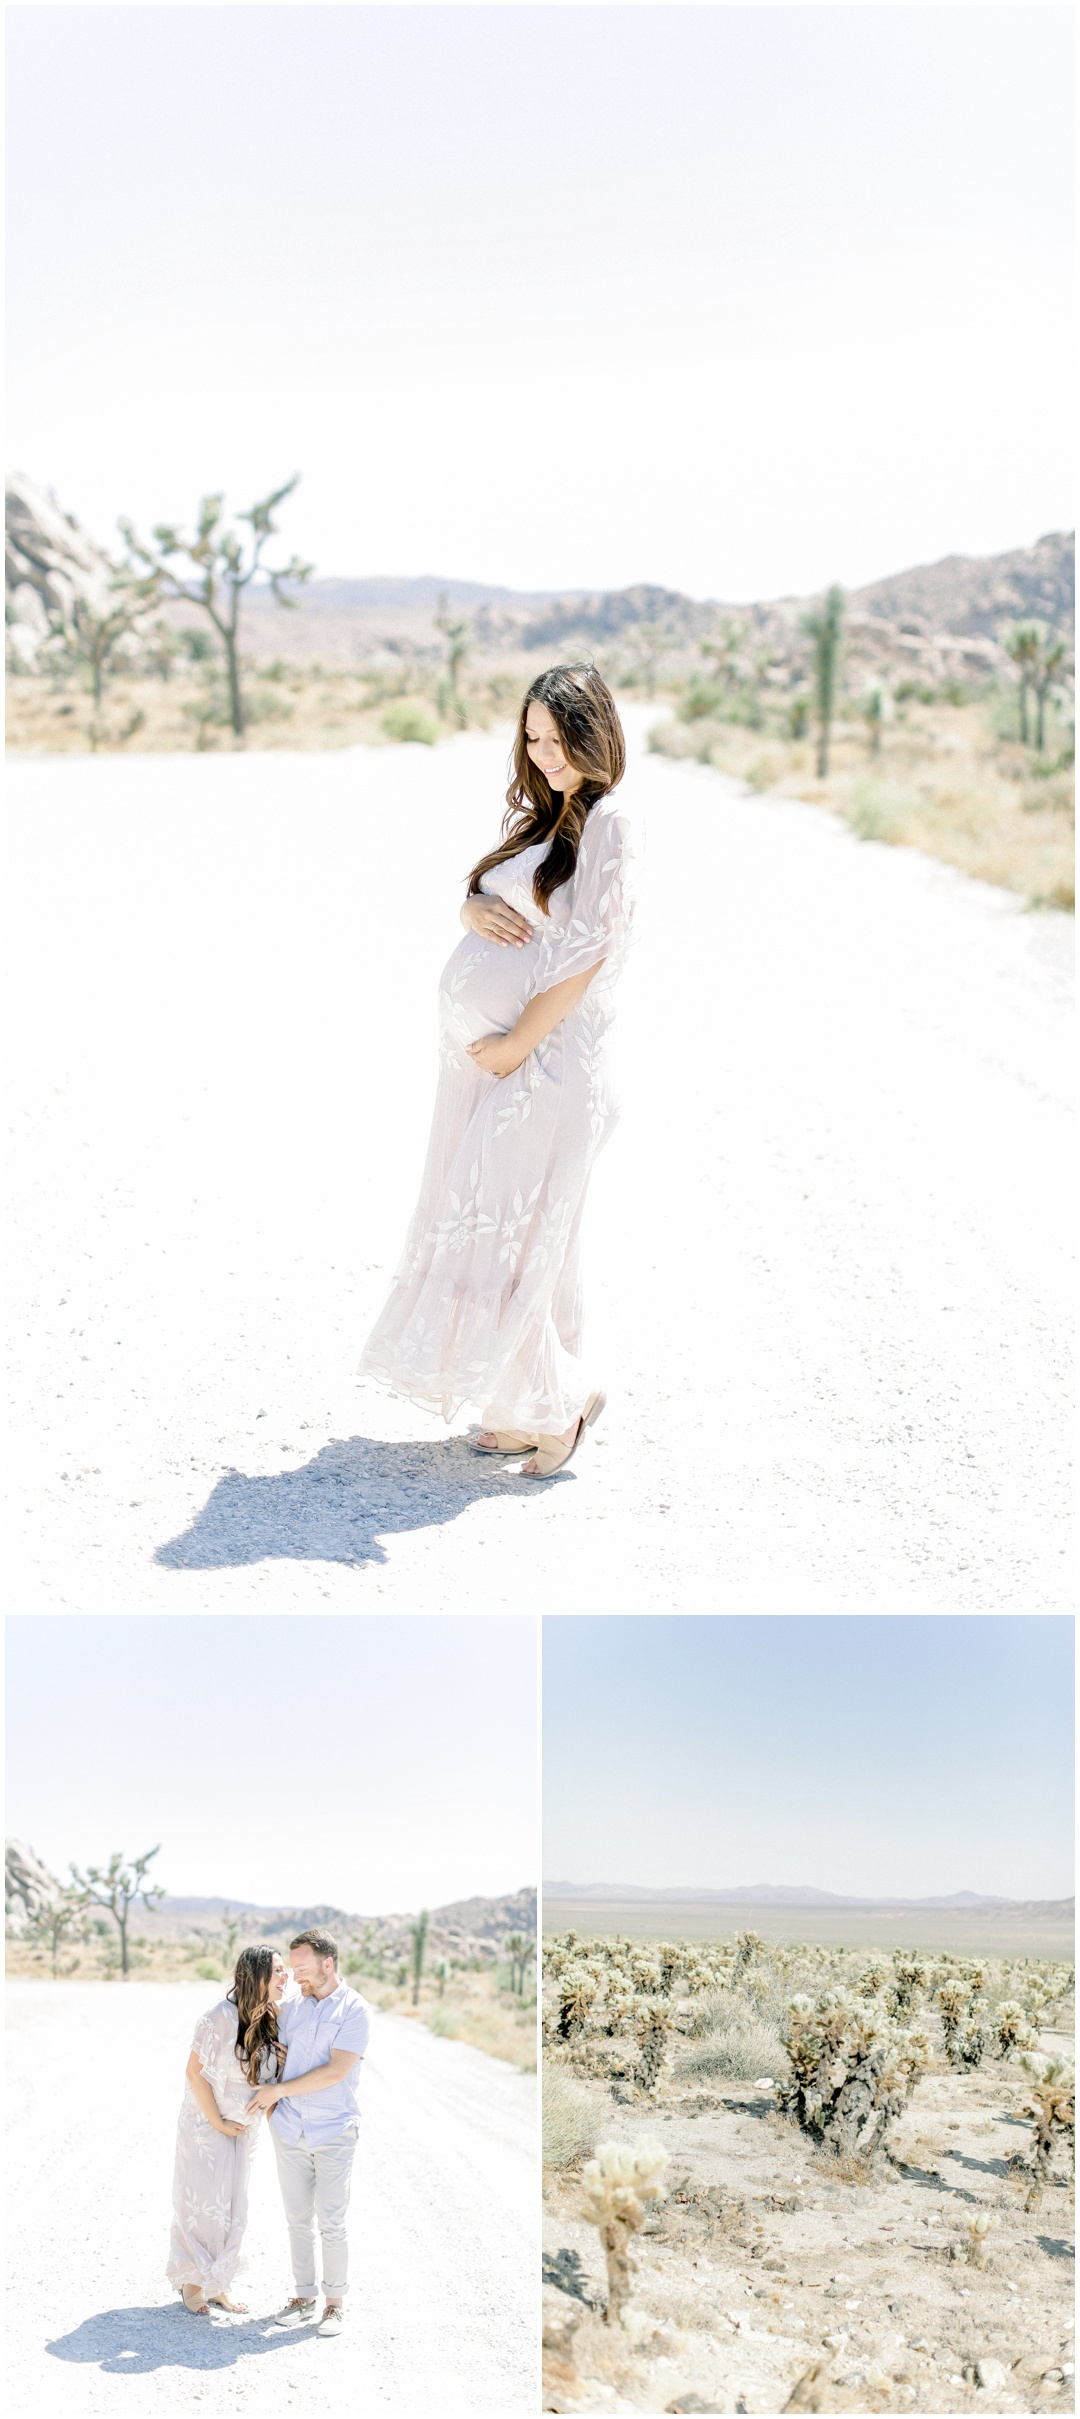 Newport_Beach_Joshua_Tree_Maternity_Photos_Session_Leliani_Hailey_Shane_Hailey_Maternity_Session__4268.jpg